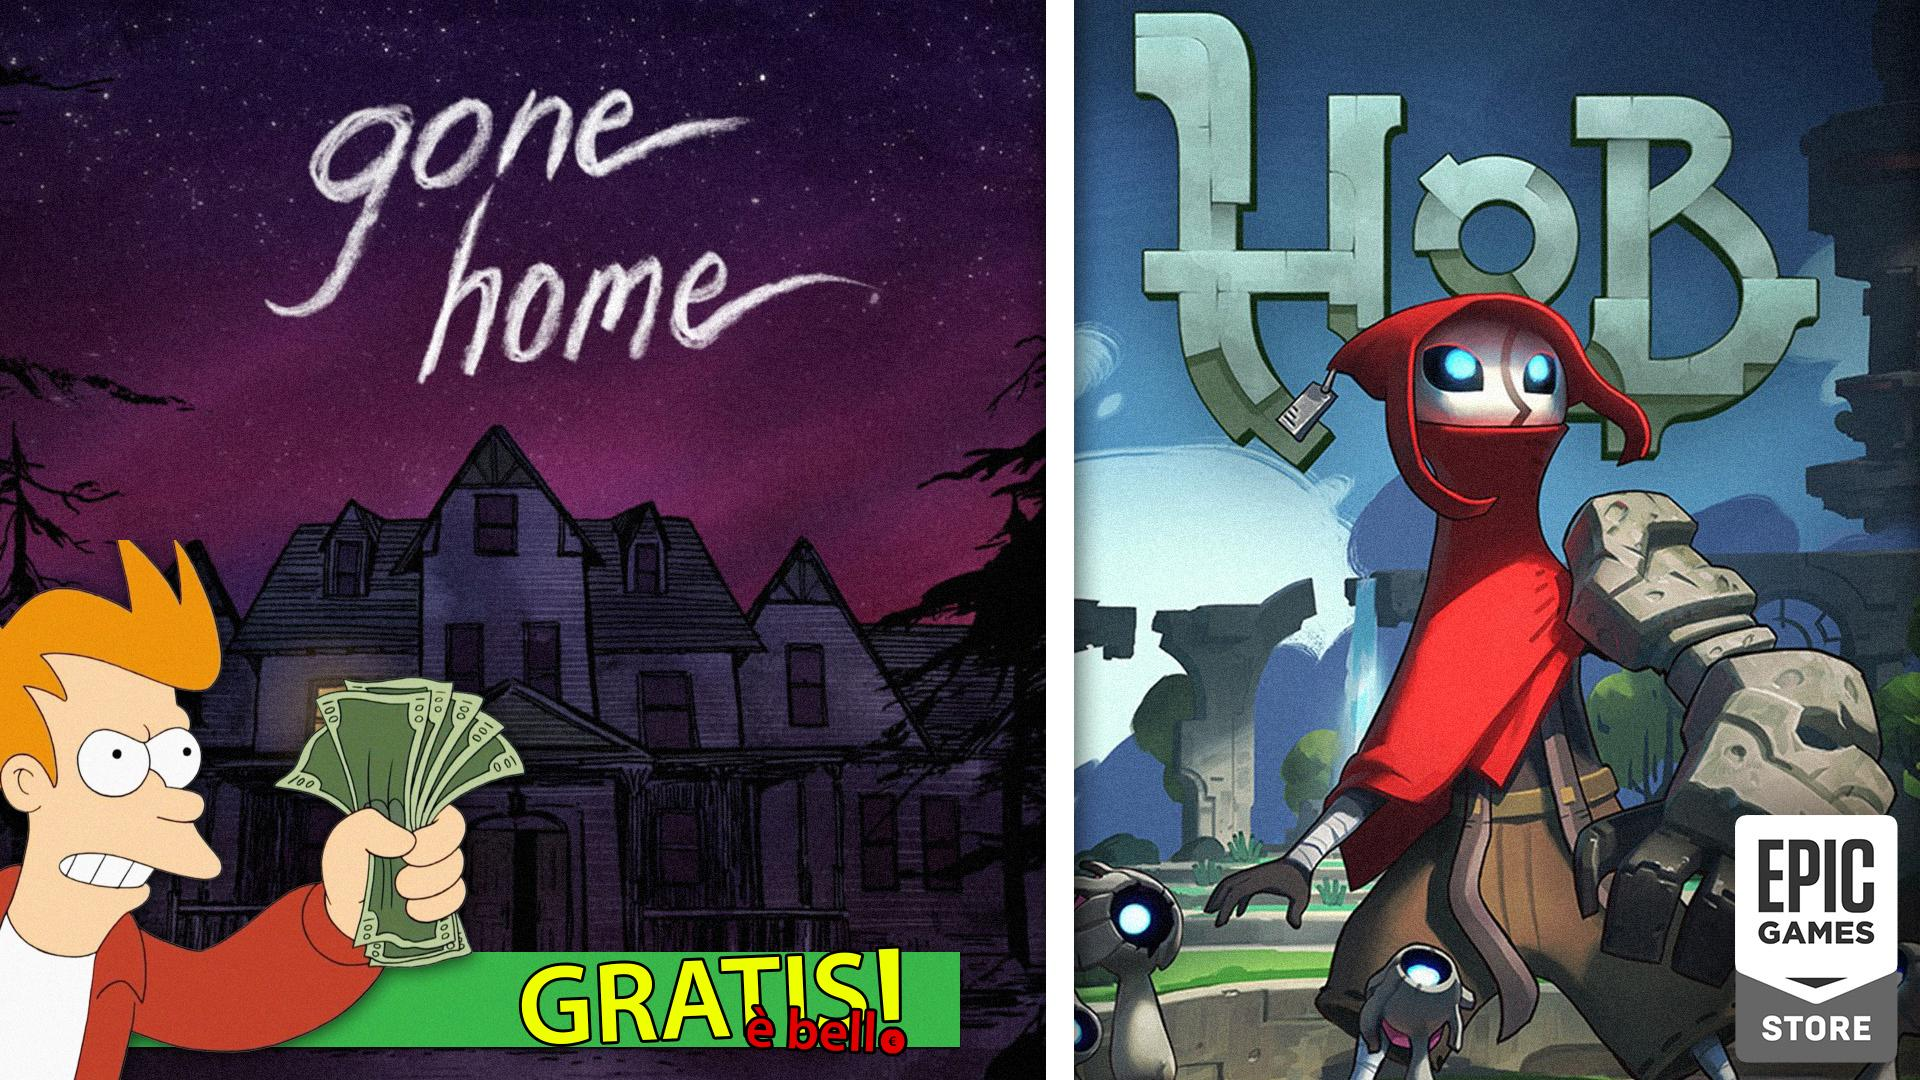 Free Is Beautiful Gone Home And Hob On Epic Games Store Let S Talk About Video Games